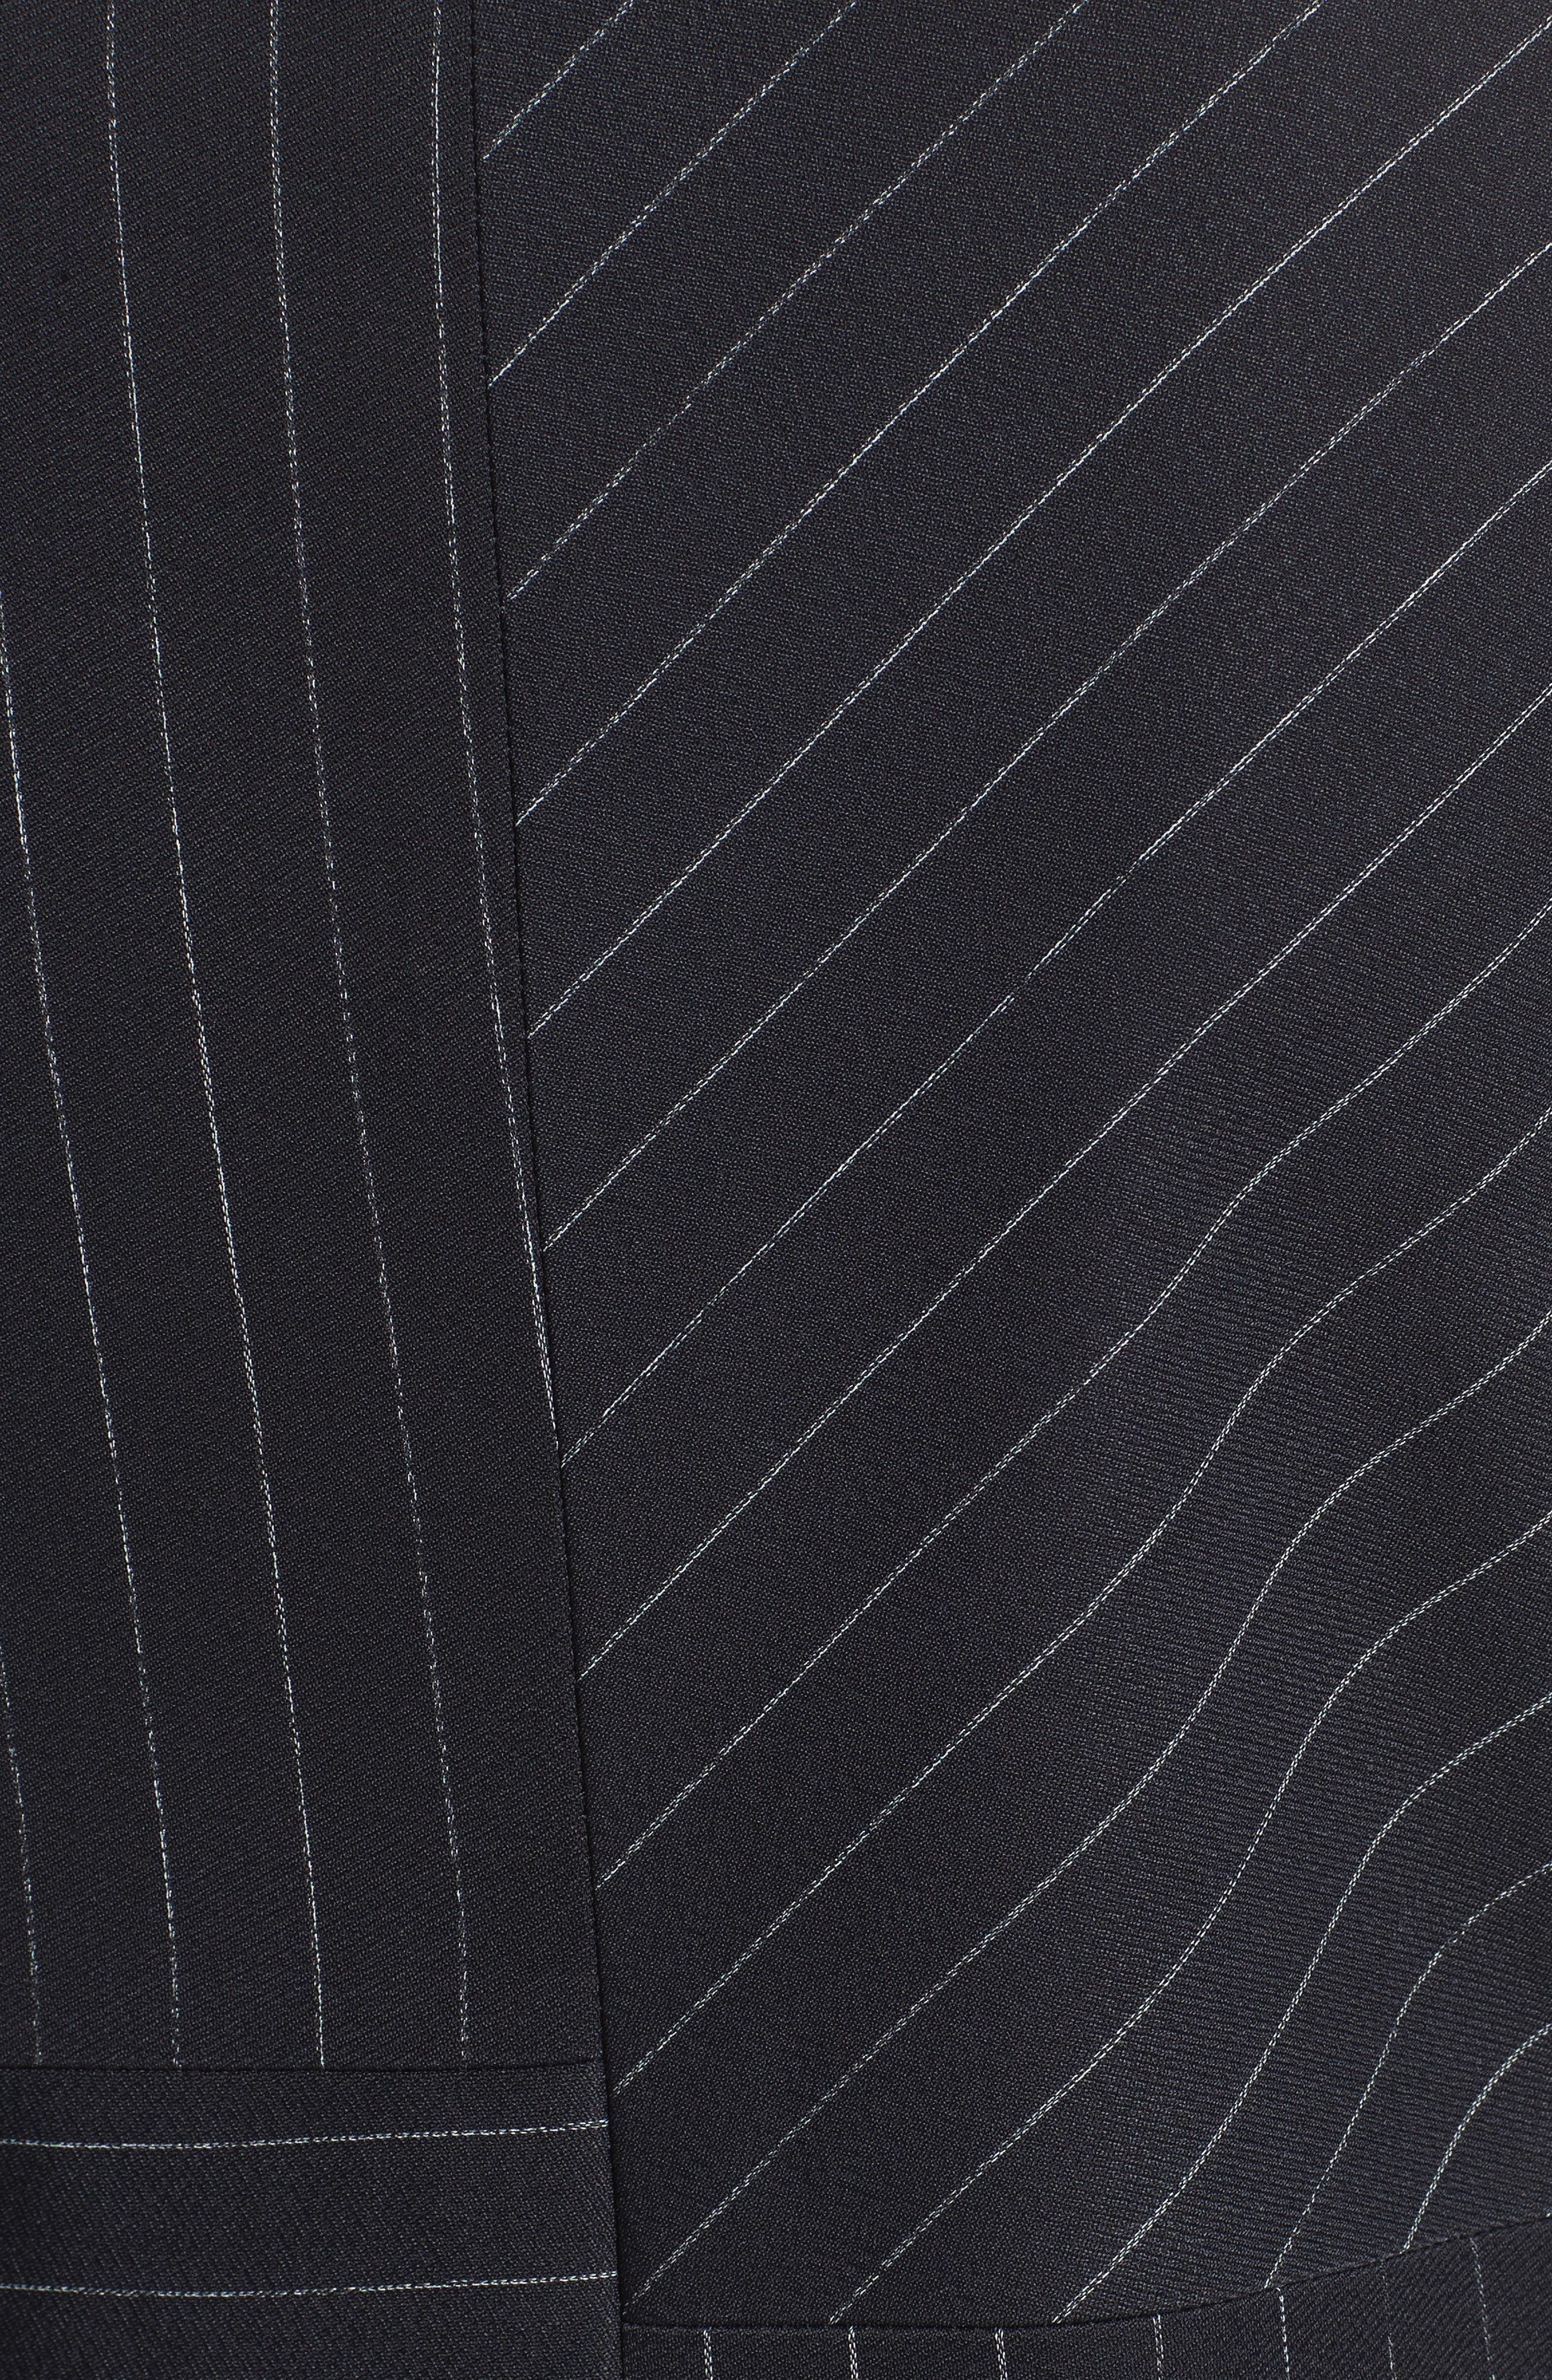 Pinstripe Stretch Jacket,                             Alternate thumbnail 6, color,                             001